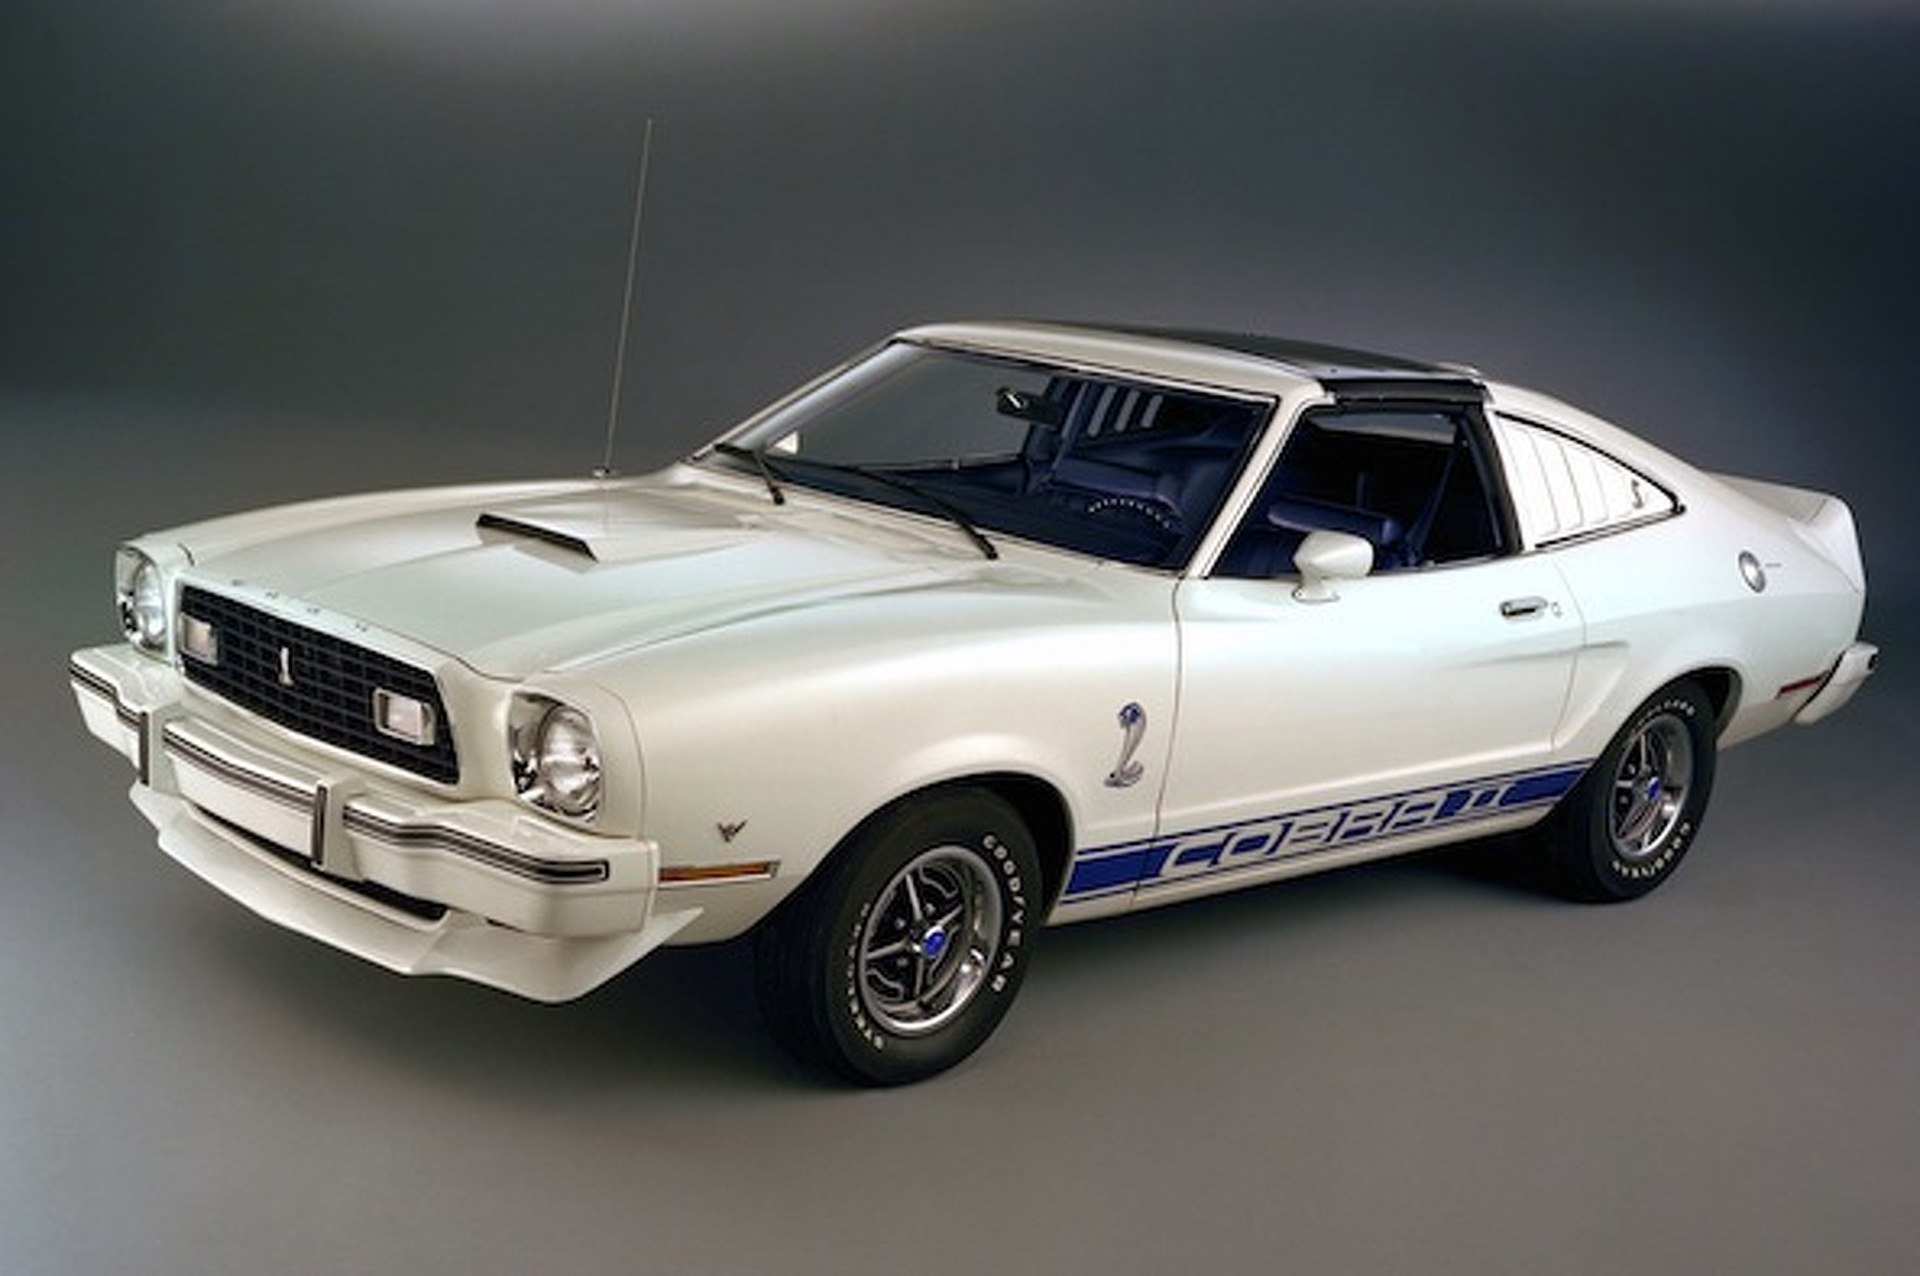 1974 Ford Mustang II: The Car Every Naughty Driver Should Get